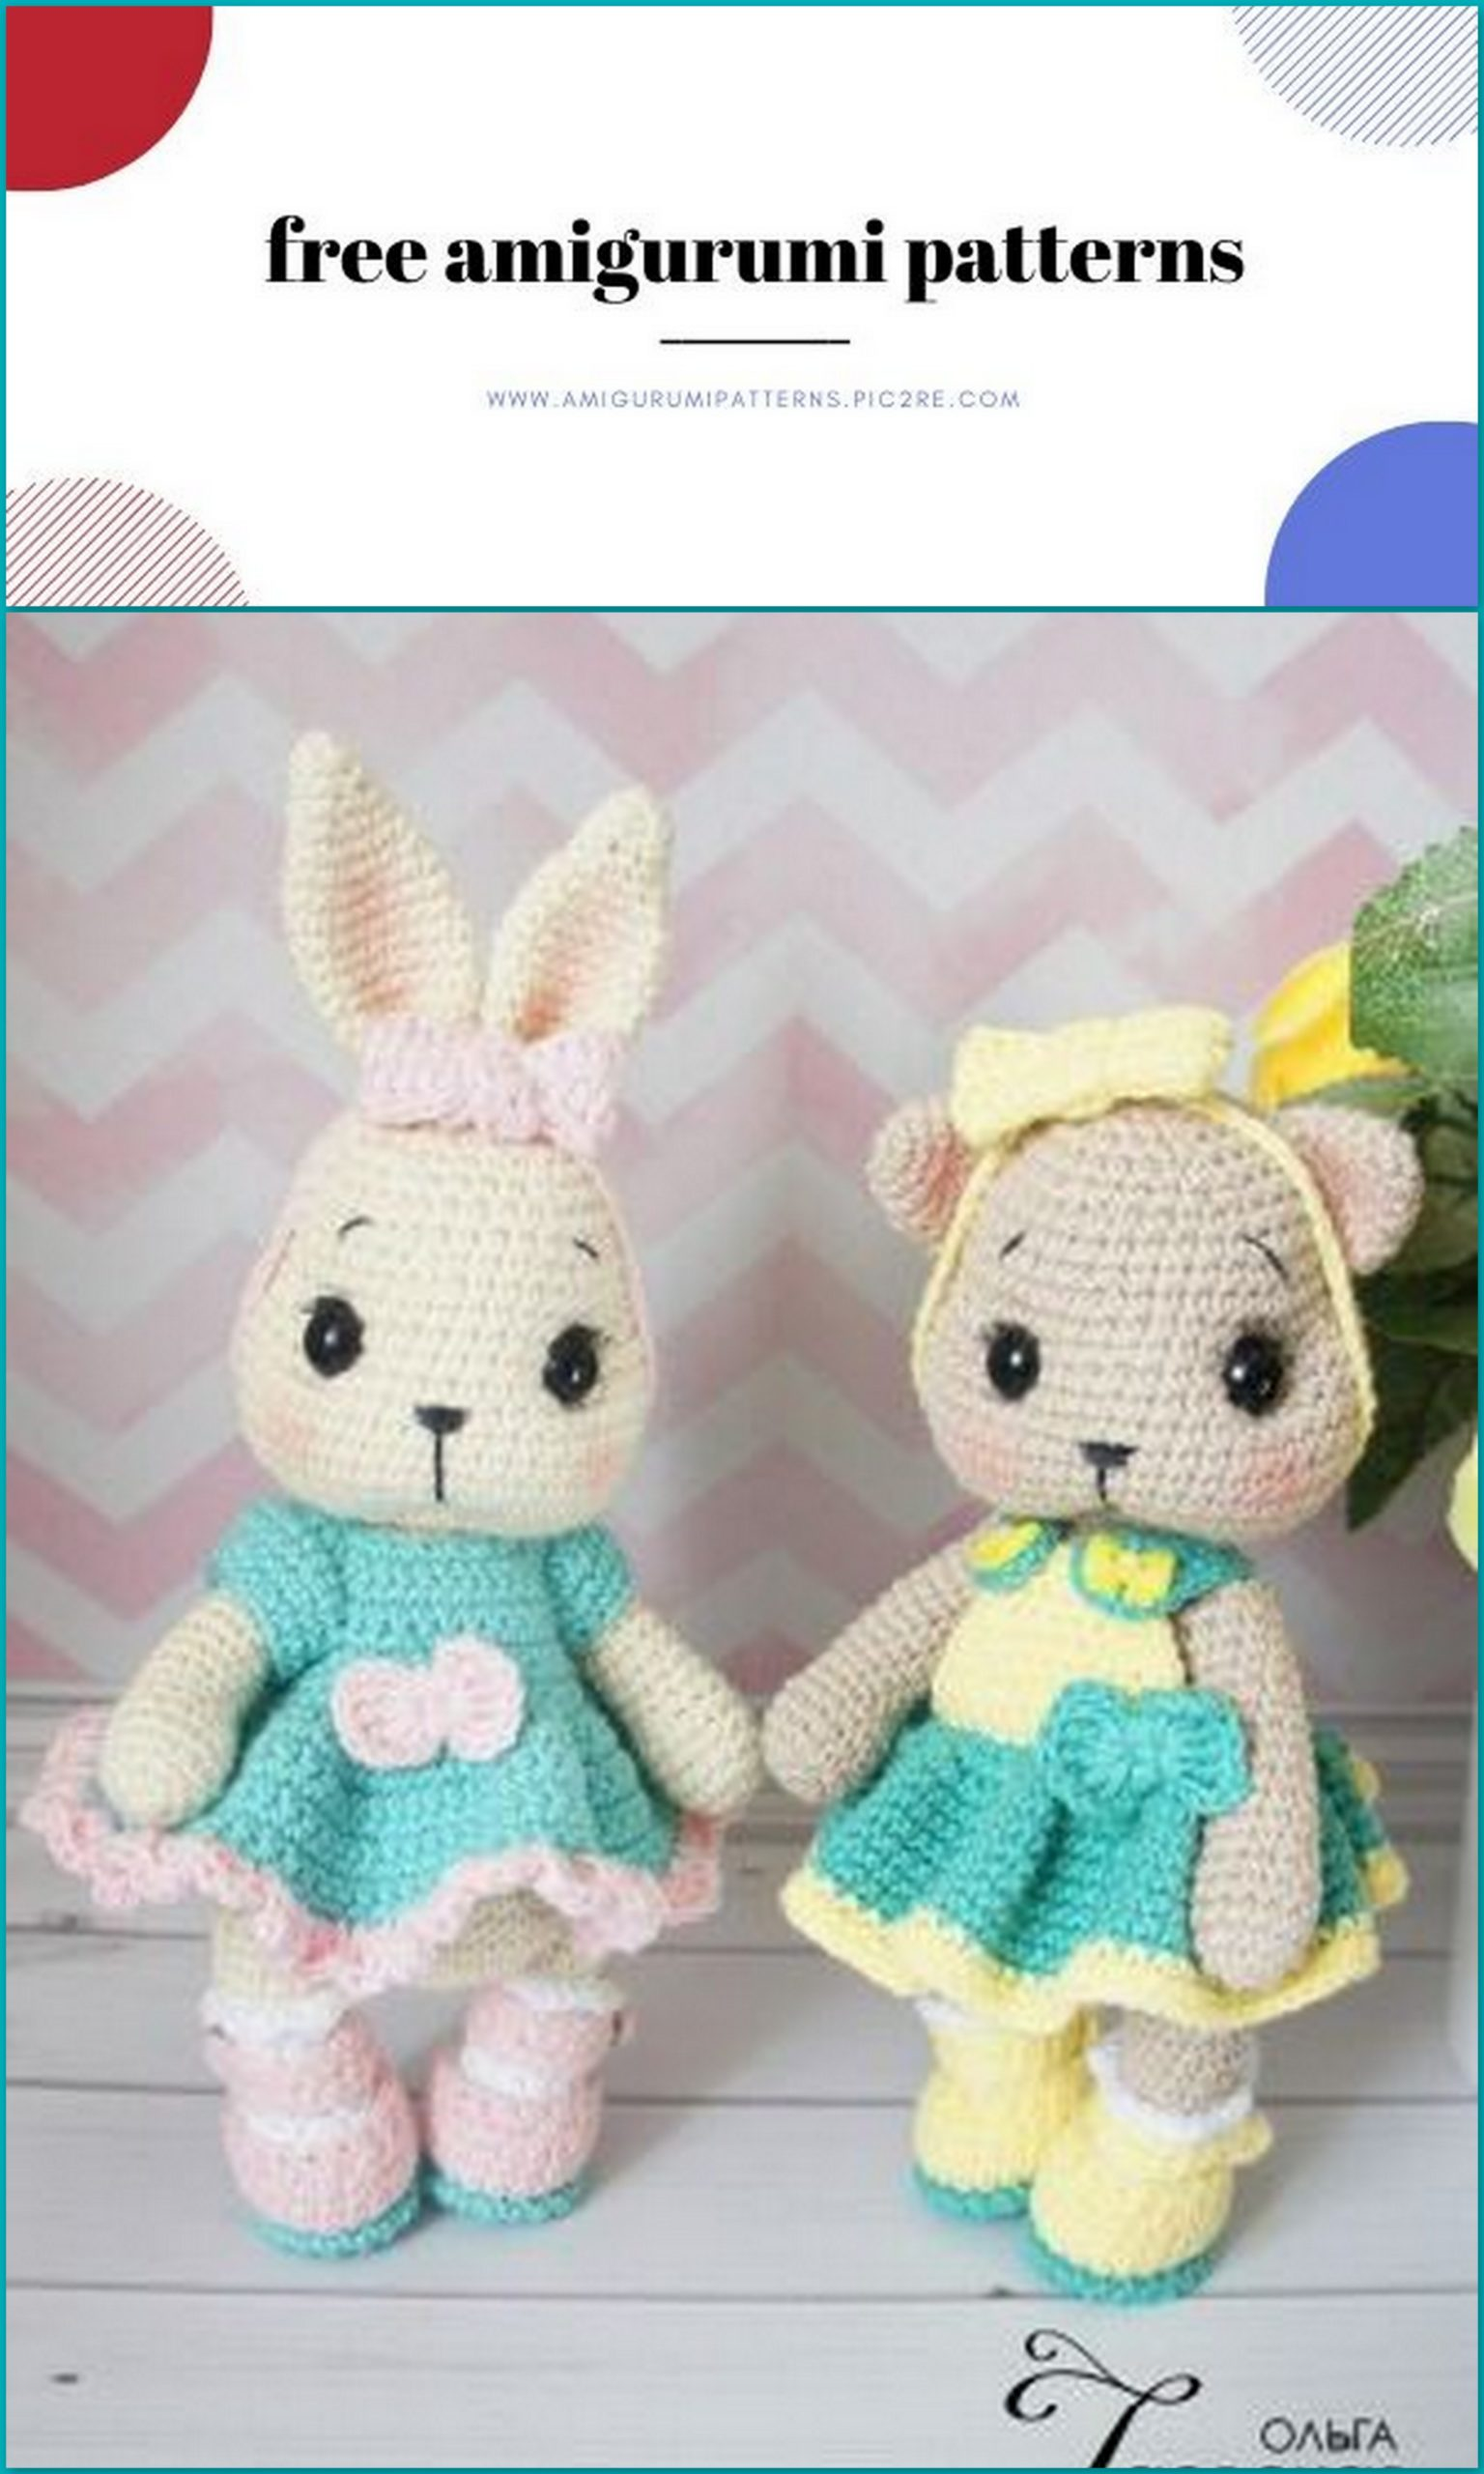 Crochet Kitty Amigurumi Toy Boots Made to Order by TwoGirlsCrochet ... | 2560x1536